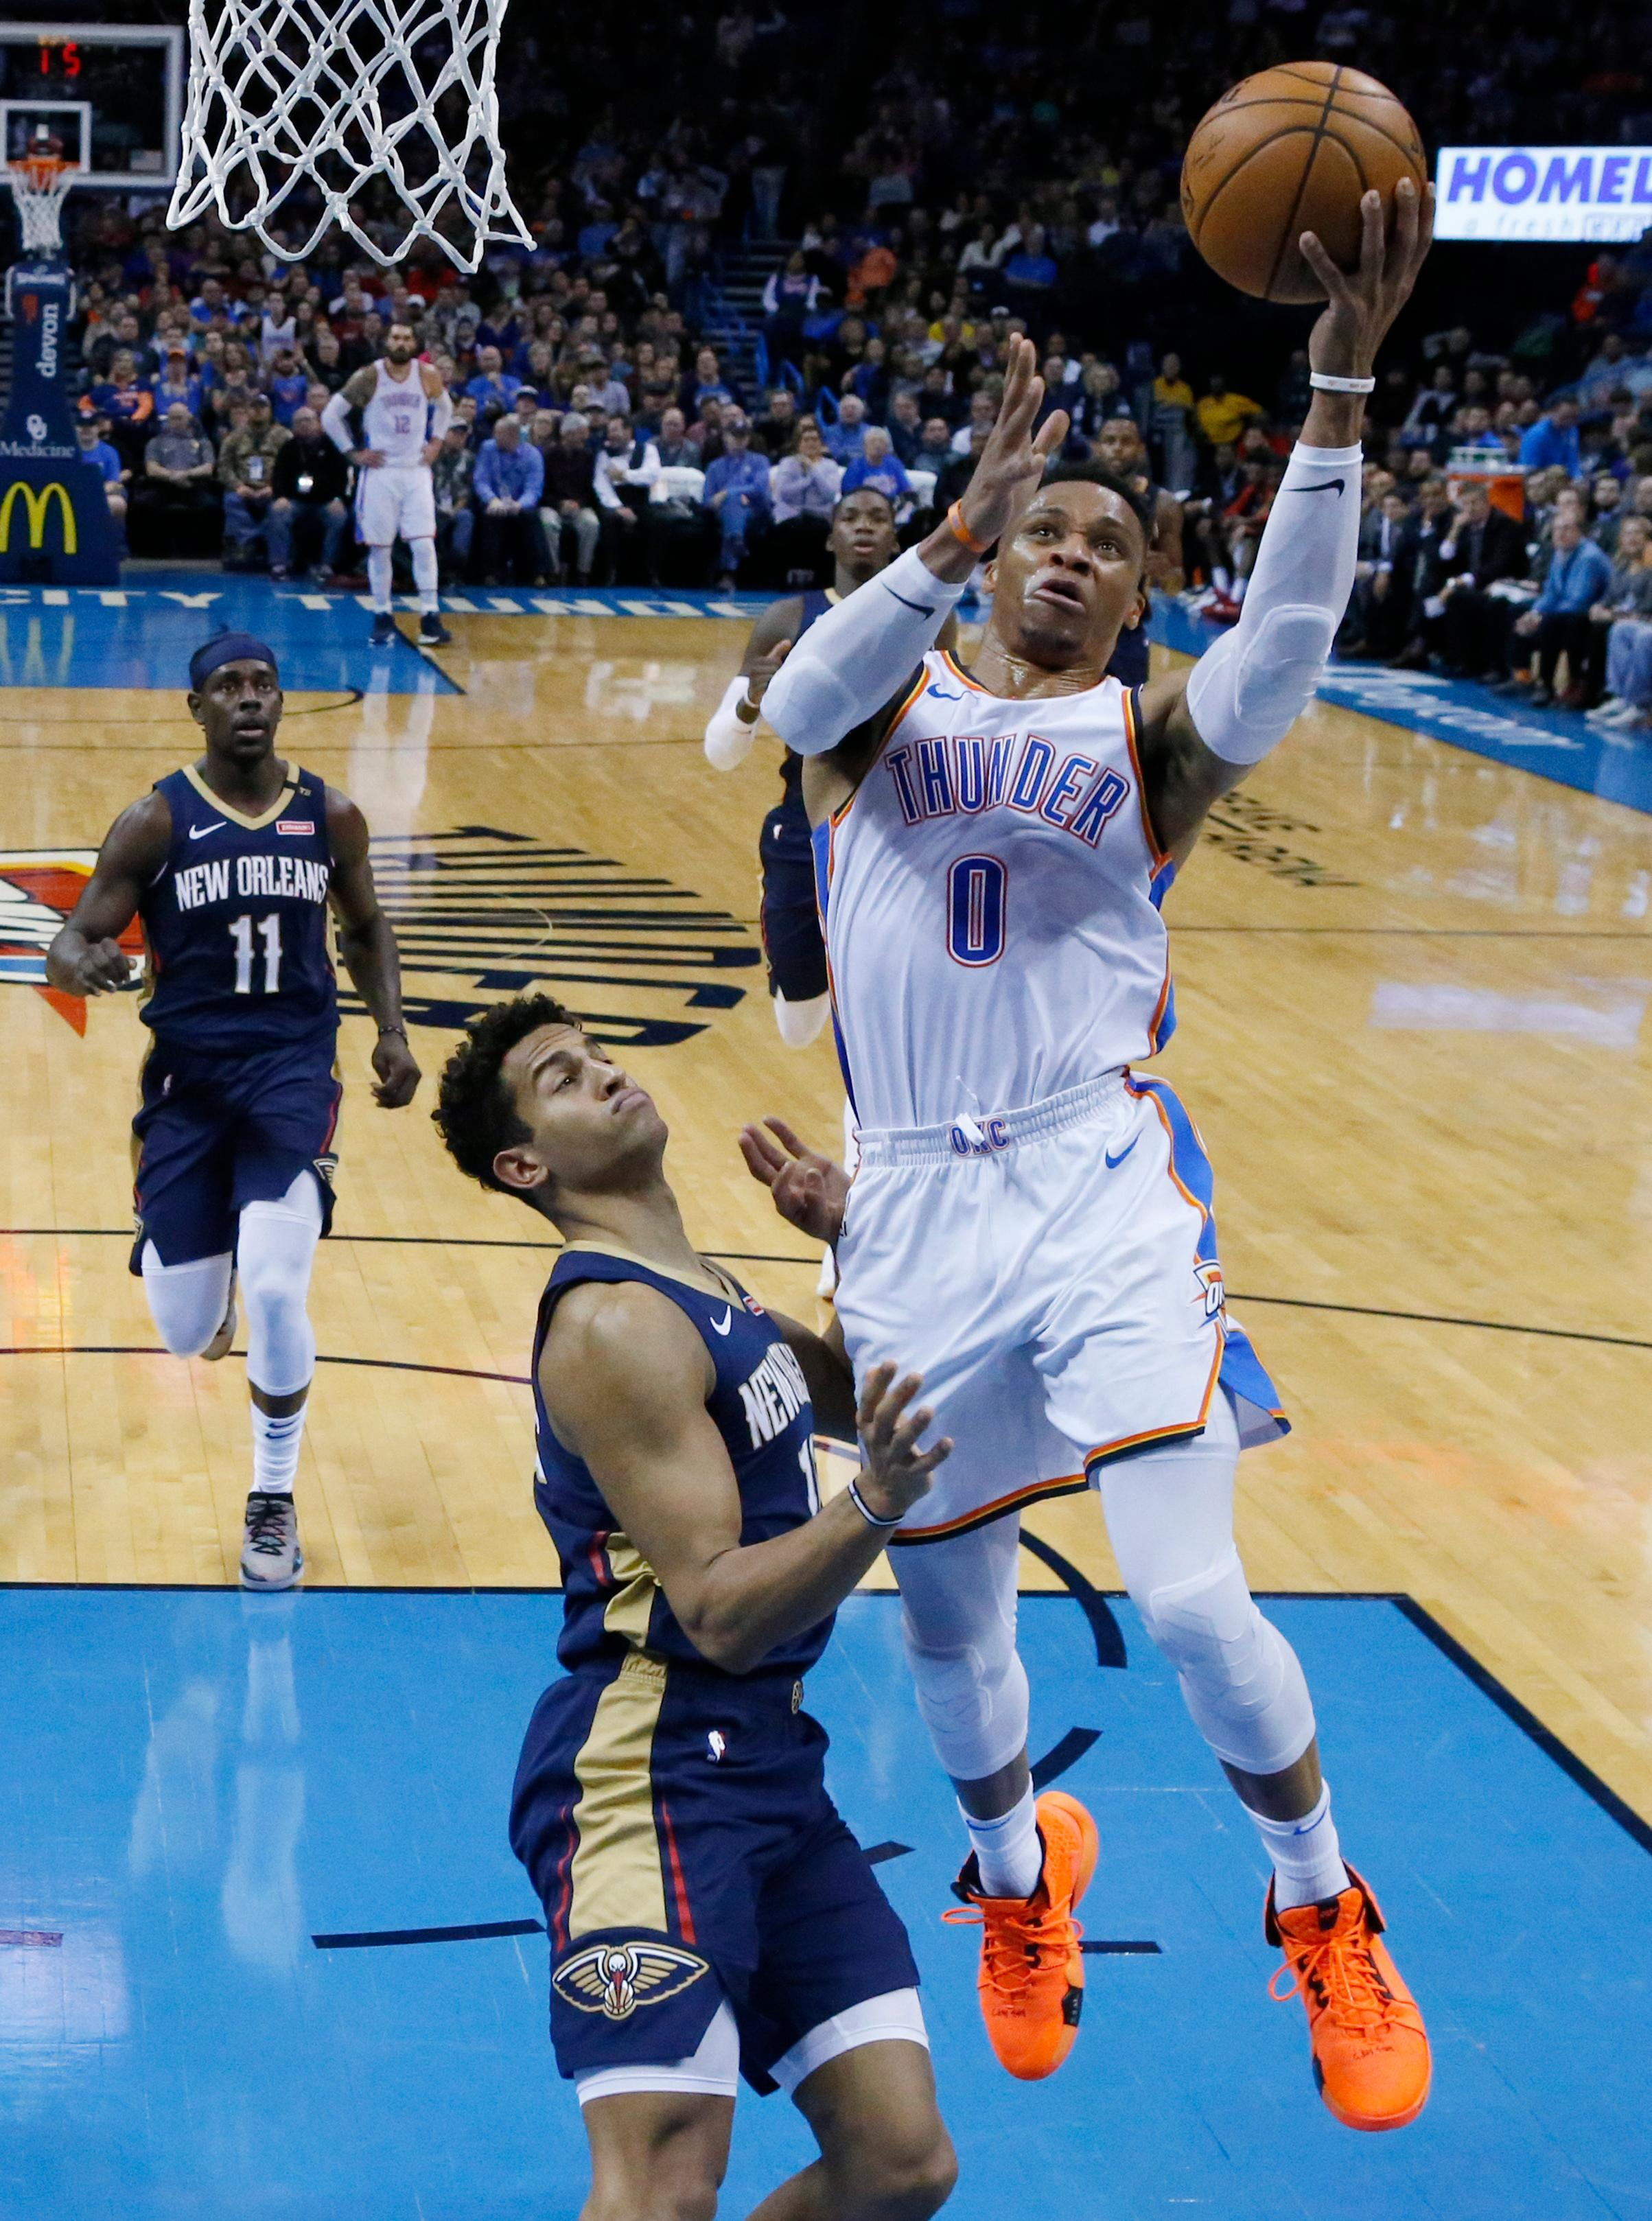 Oklahoma City Thunder guard Russell Westbrook (0) goes up for a shot in front of New Orleans Pelicans guard Frank Jackson during the first half of an NBA basketball game in Oklahoma City, Thursday, Jan. 24, 2019. (AP Photo/Sue Ogrocki)